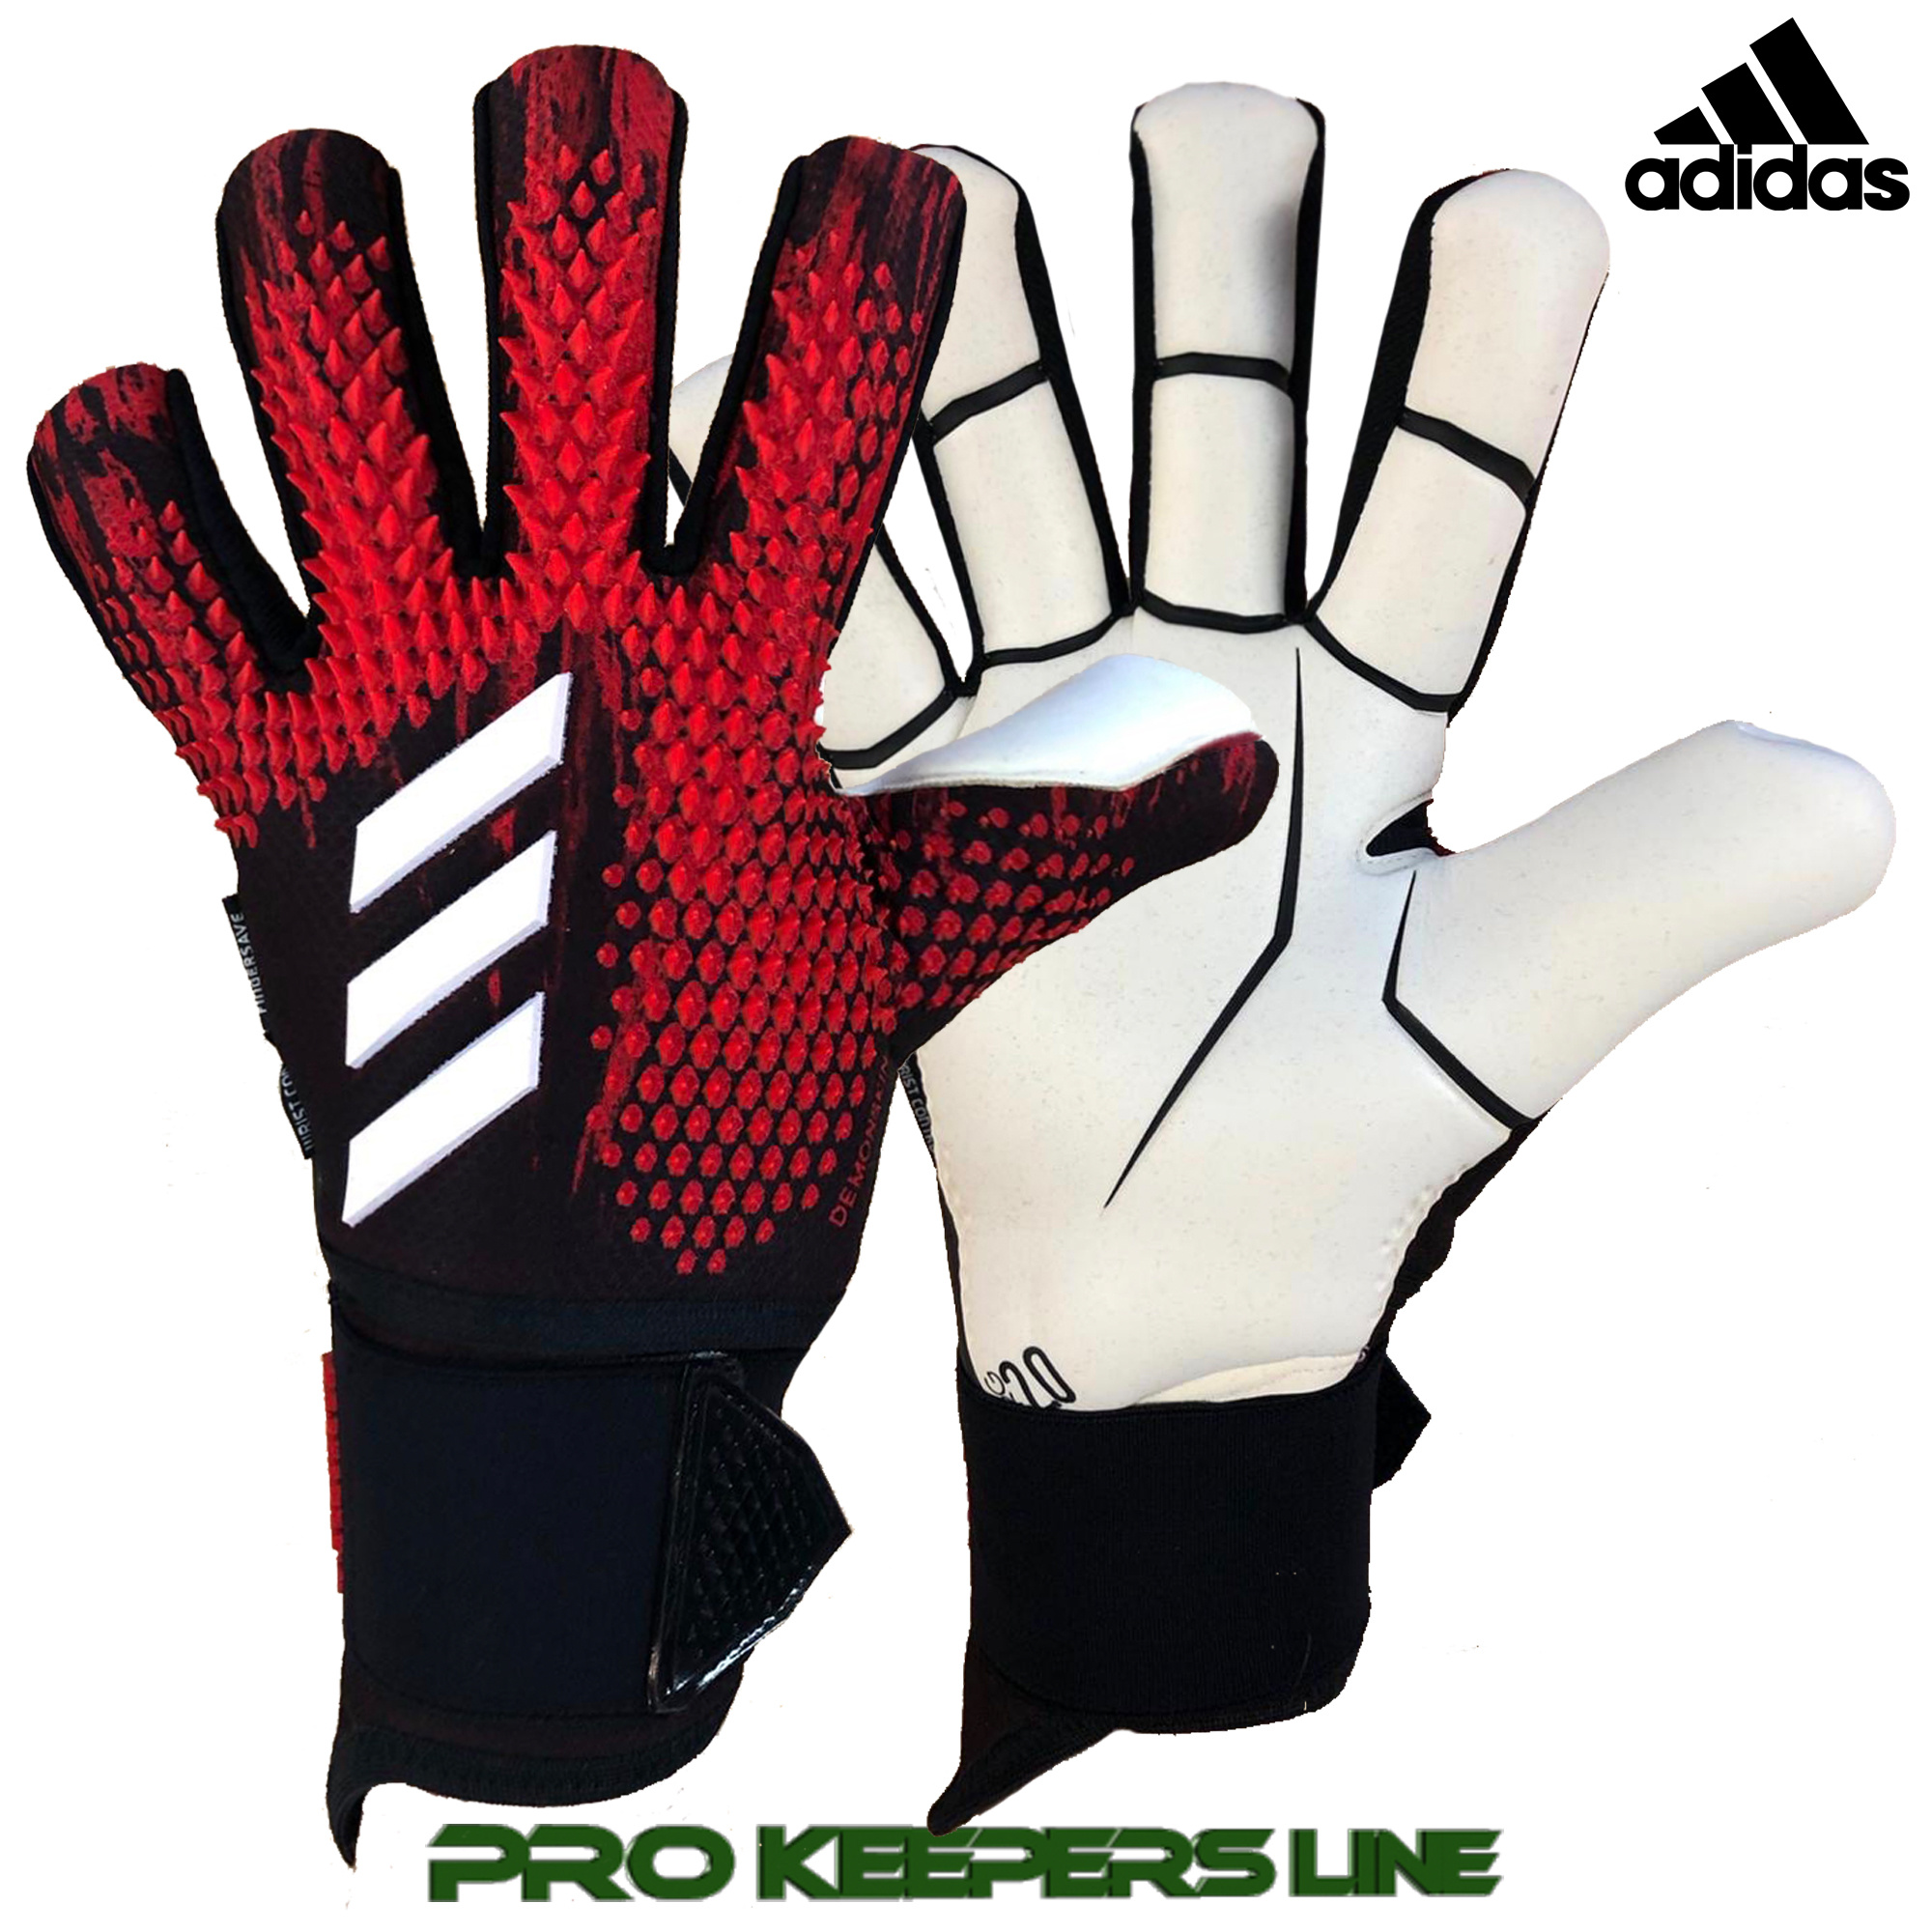 ADIDAS PREDATOR GL PRO ULTIMATE BLACKACTIVE RED